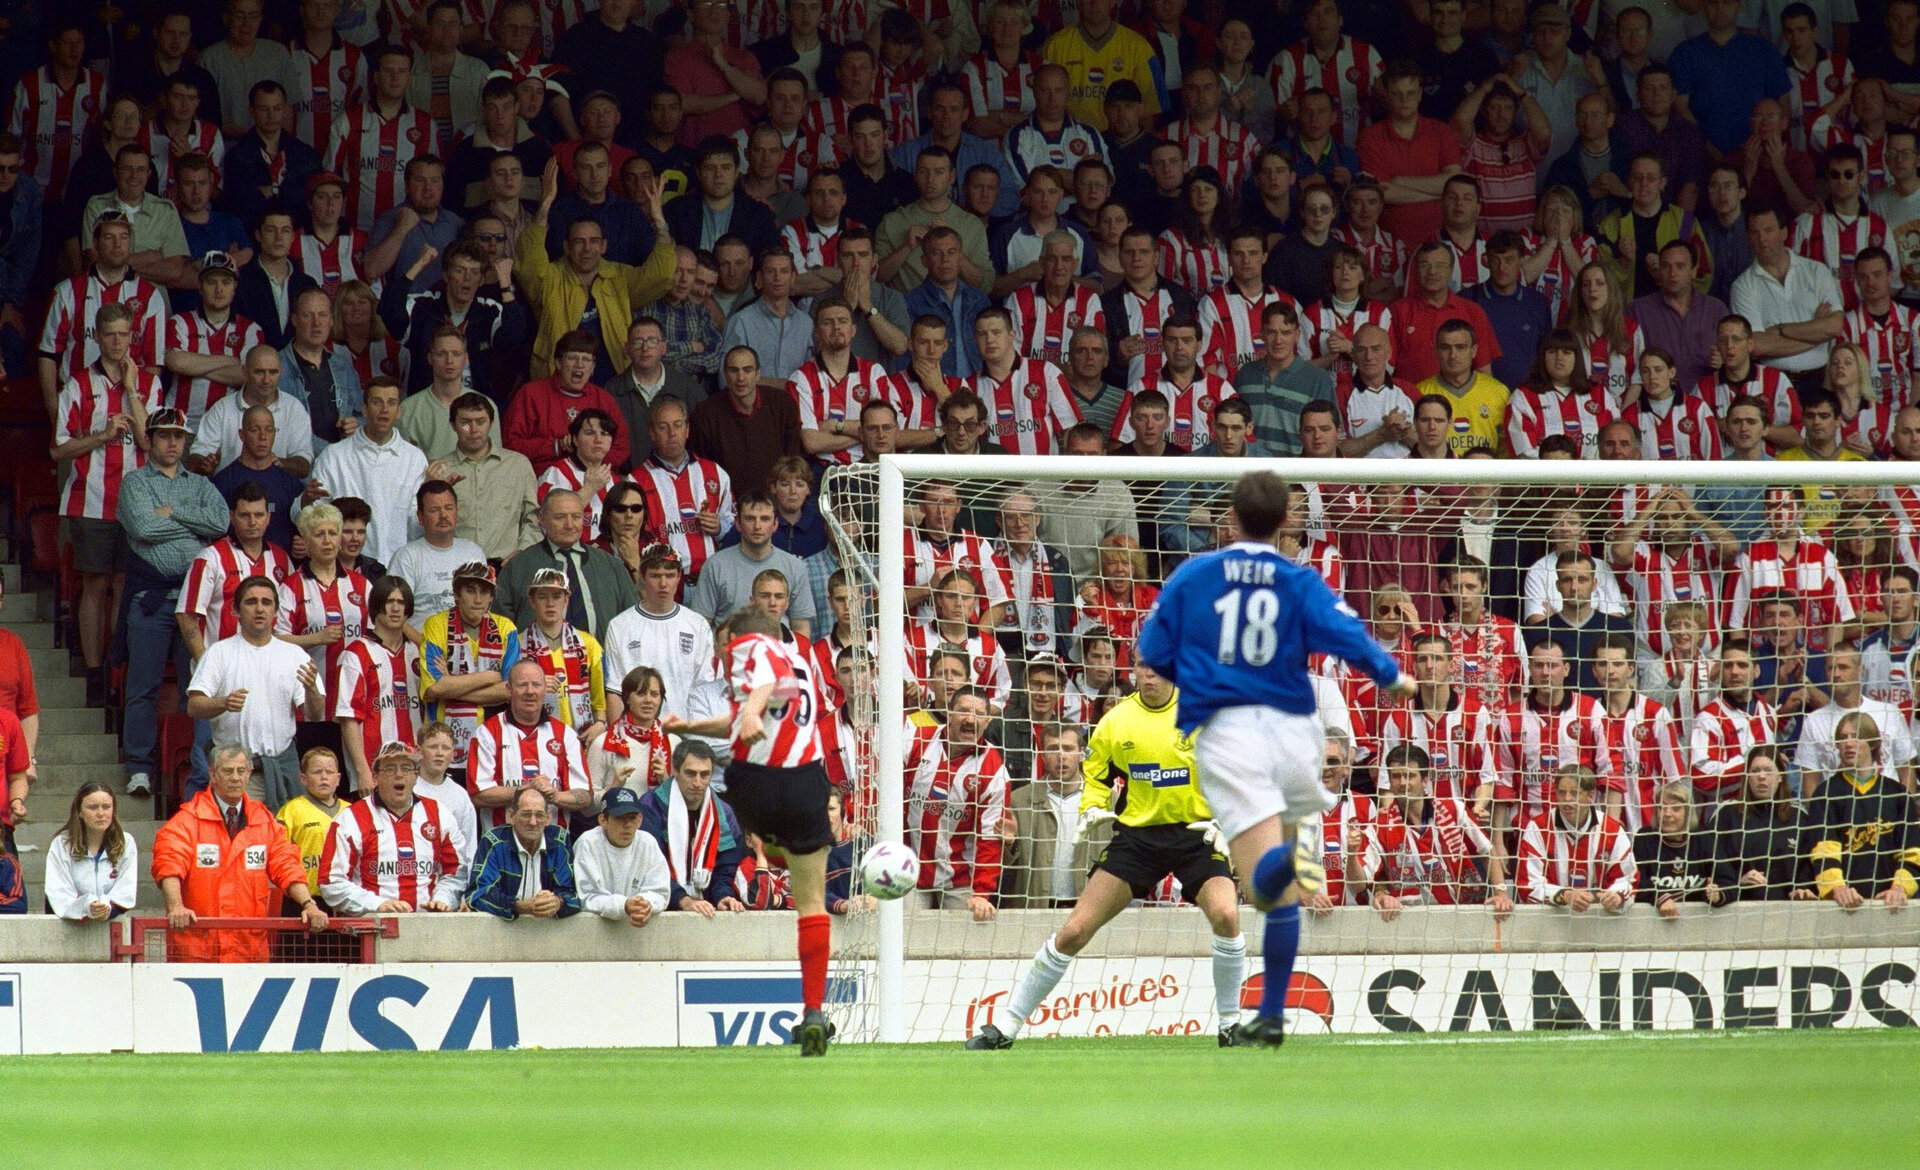 Southampton v Everton 16/5/99 F.A.Premier League  Mandatory Credit: Action Images/Alex Morton  The crowd stand to see if Southampton's James Beattie's shot is going to be a goal